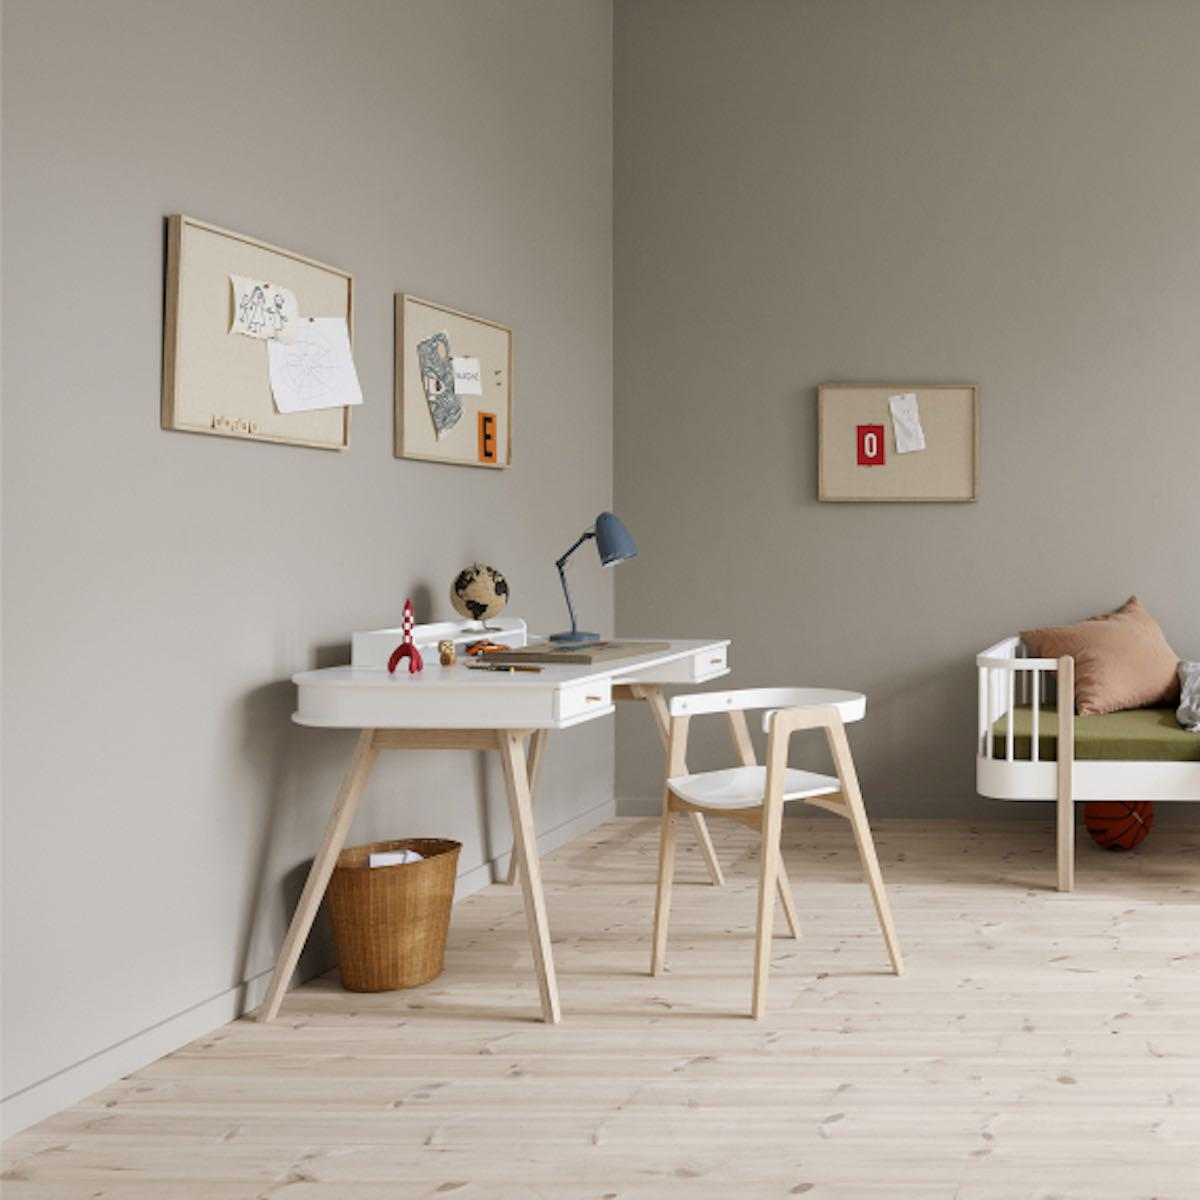 Bureau-chaise 66cm WOOD Oliver Furniture blanc-chêne